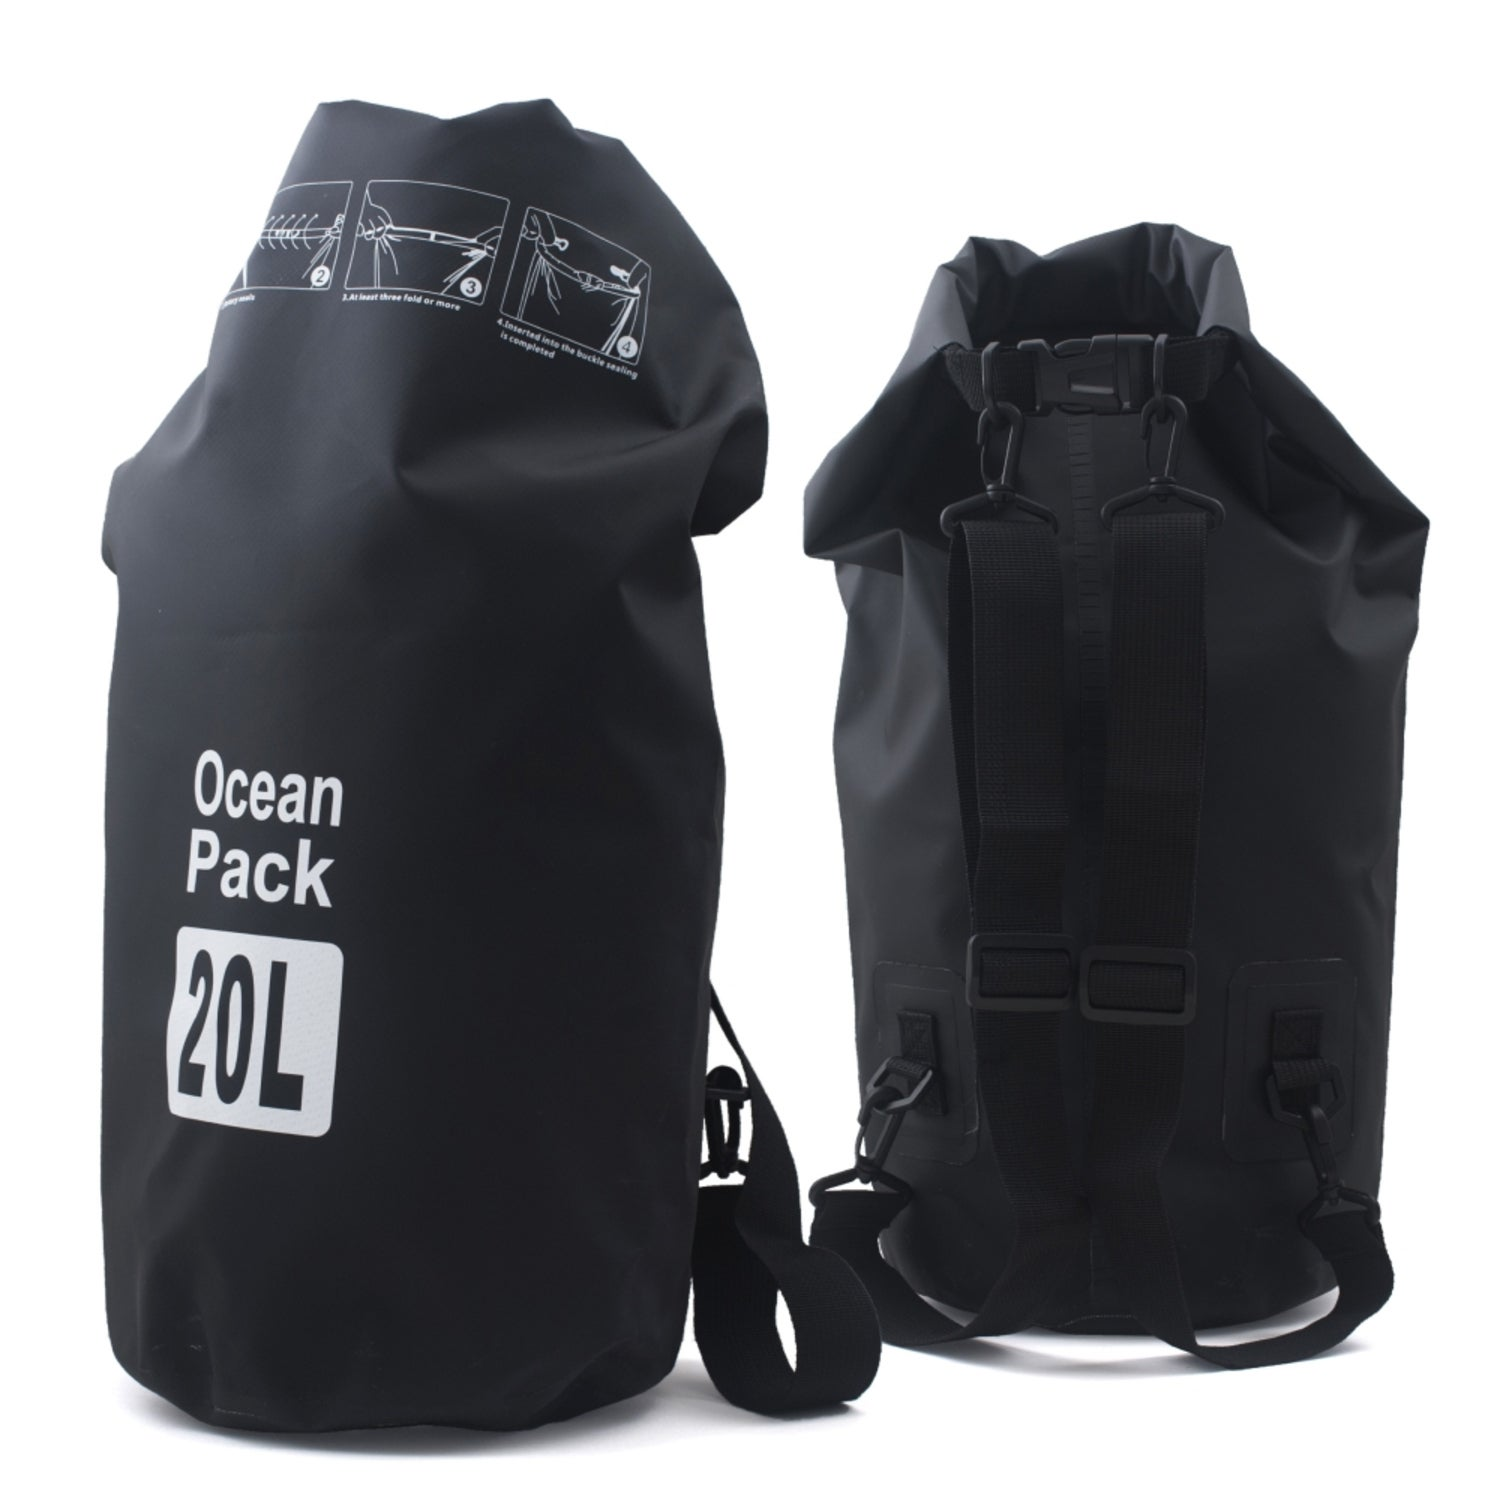 93d465c9280d Shop Zodaca 20L Durable Nylon Waterproof Outdoor Adventure Dry Bag Backpack  for Kayaking Boating Floating Swimming Camping Sports - On Sale - Free  Shipping ...